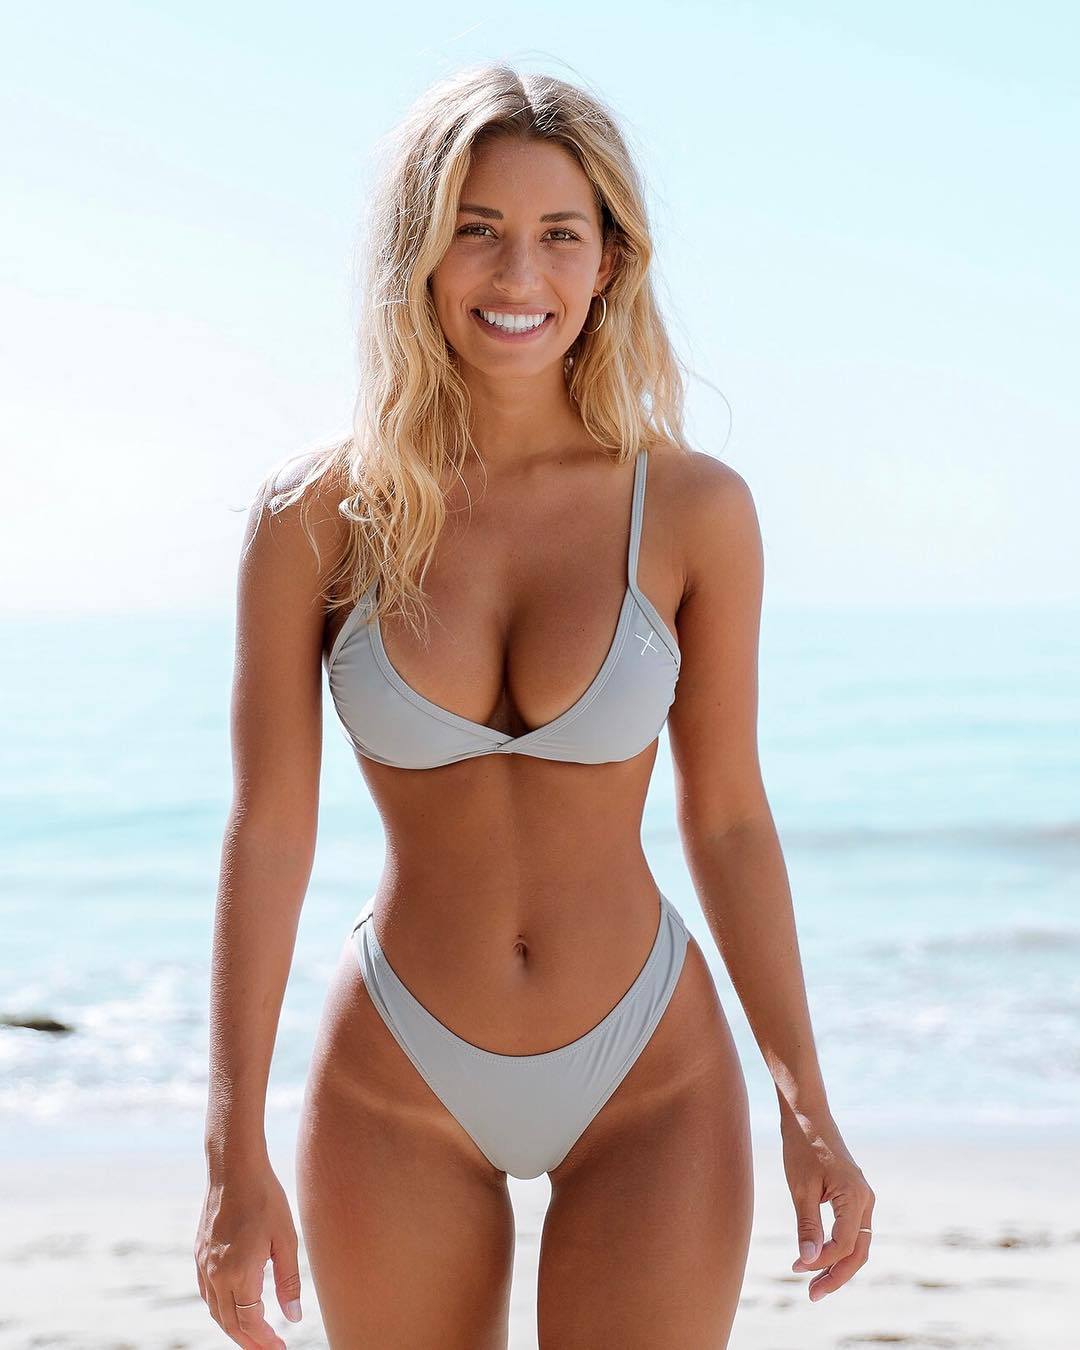 Sierra Skye Nude Photos 58